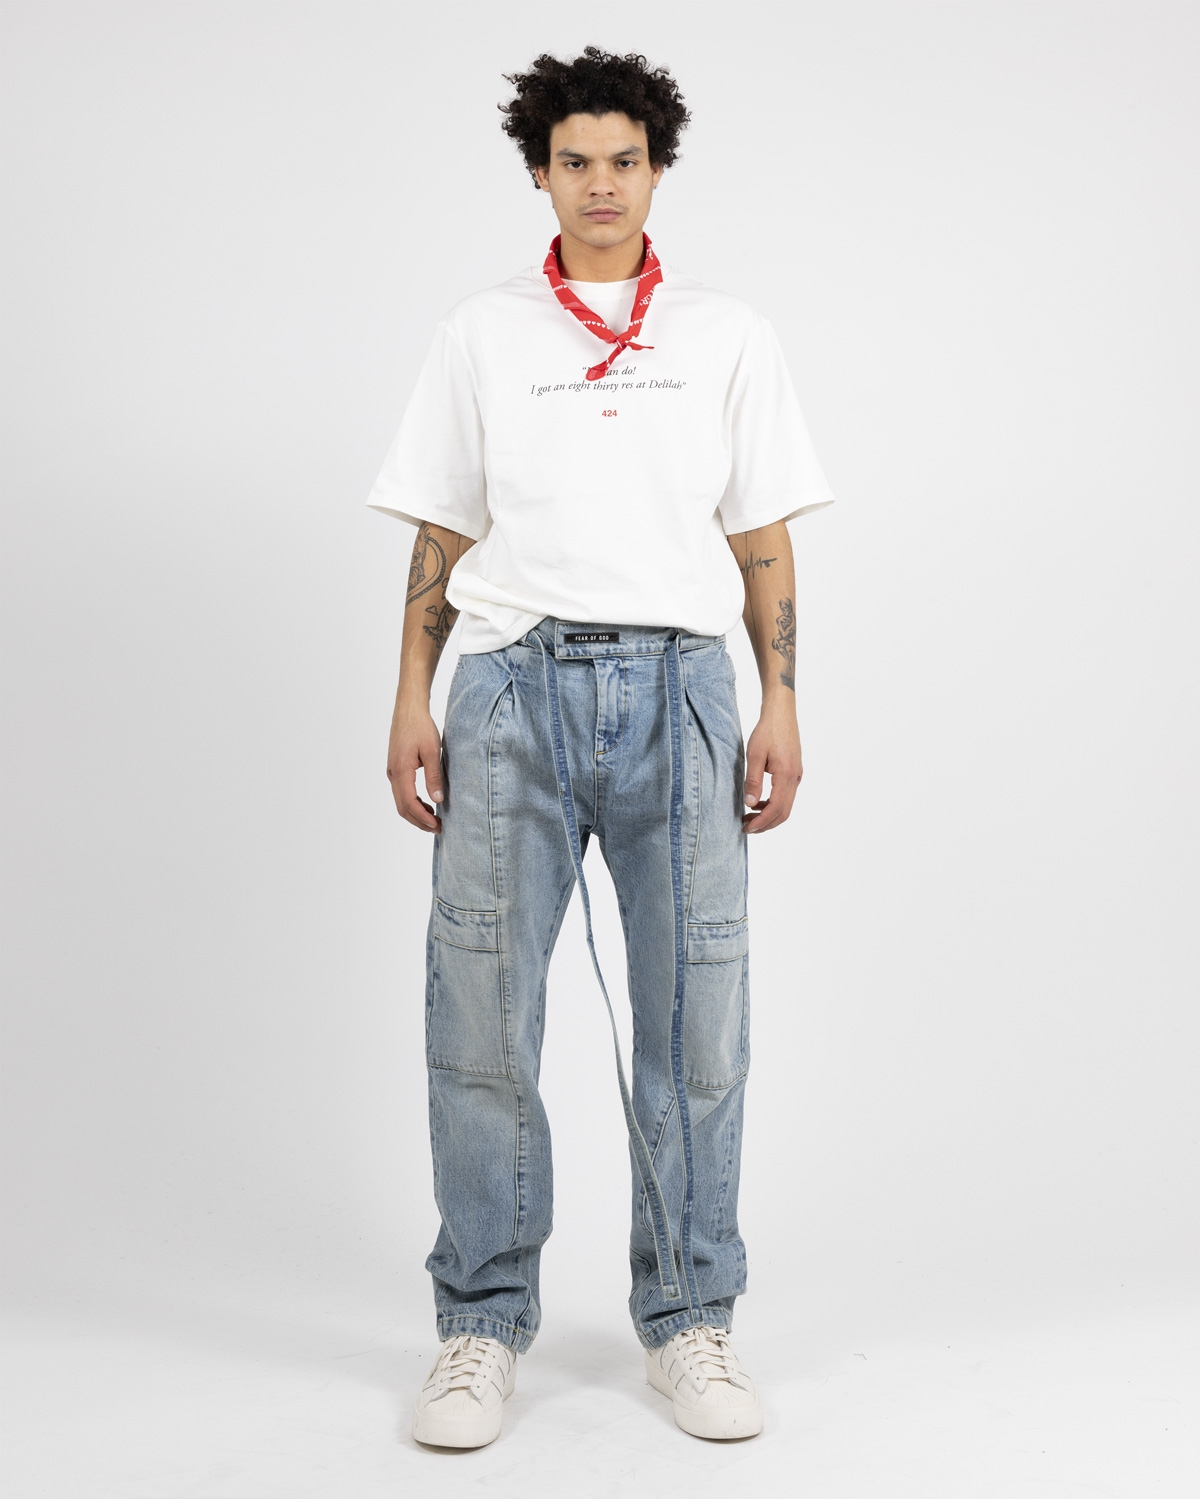 FEAR OF GOD TIE JEANS